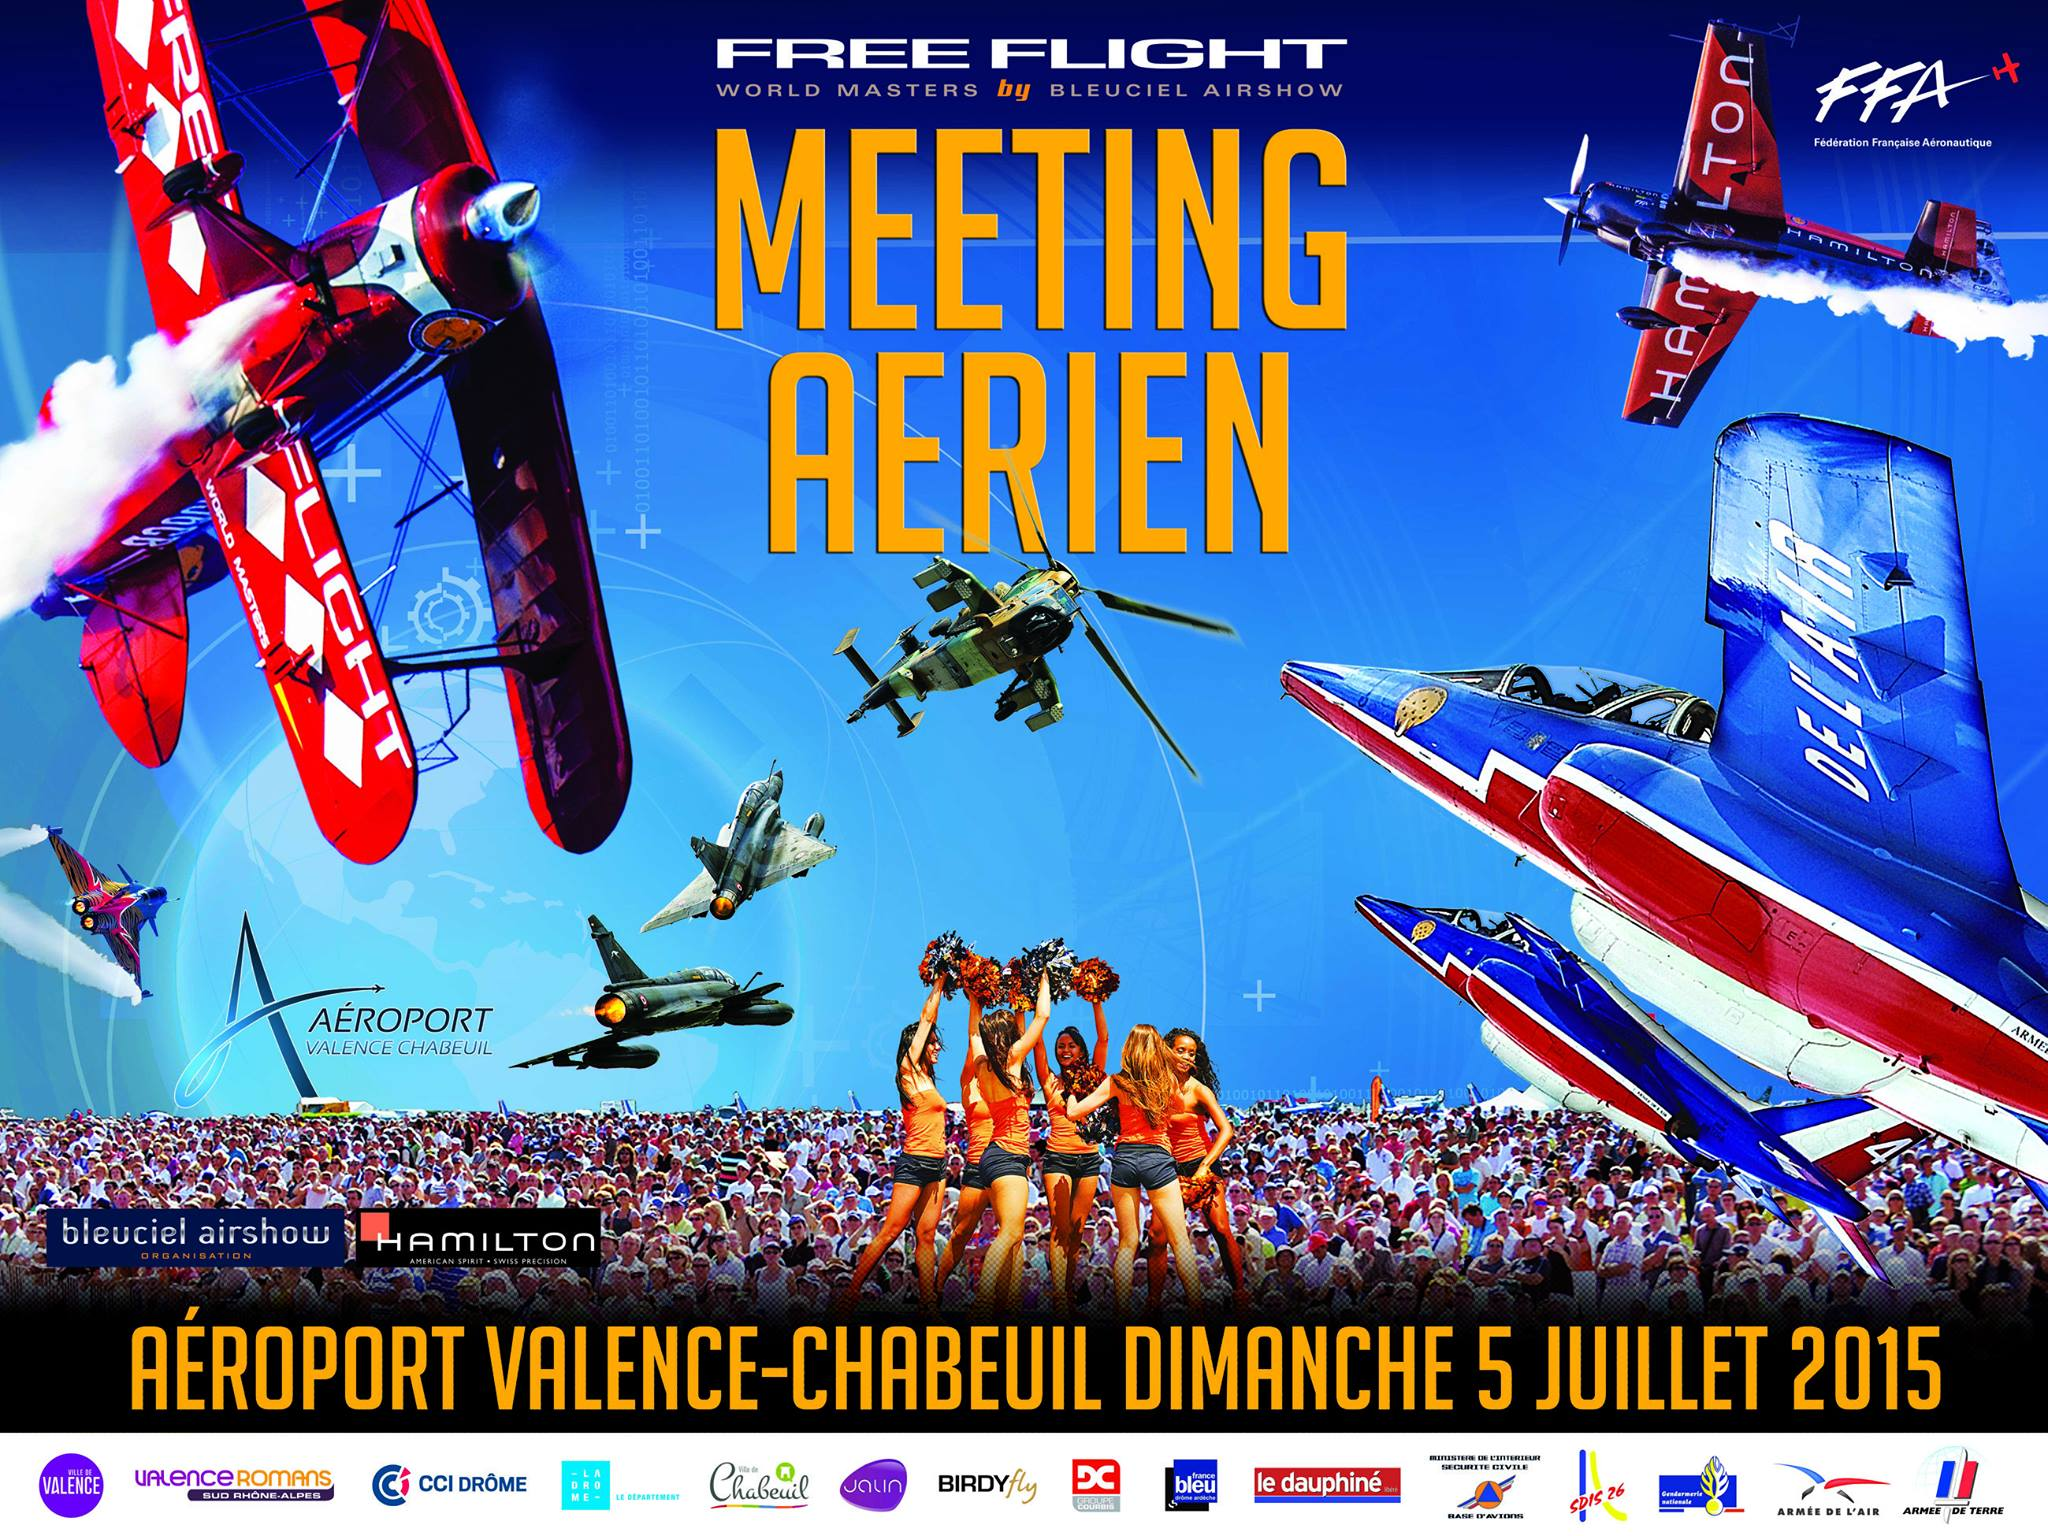 Affiche Valence-Chabeuil